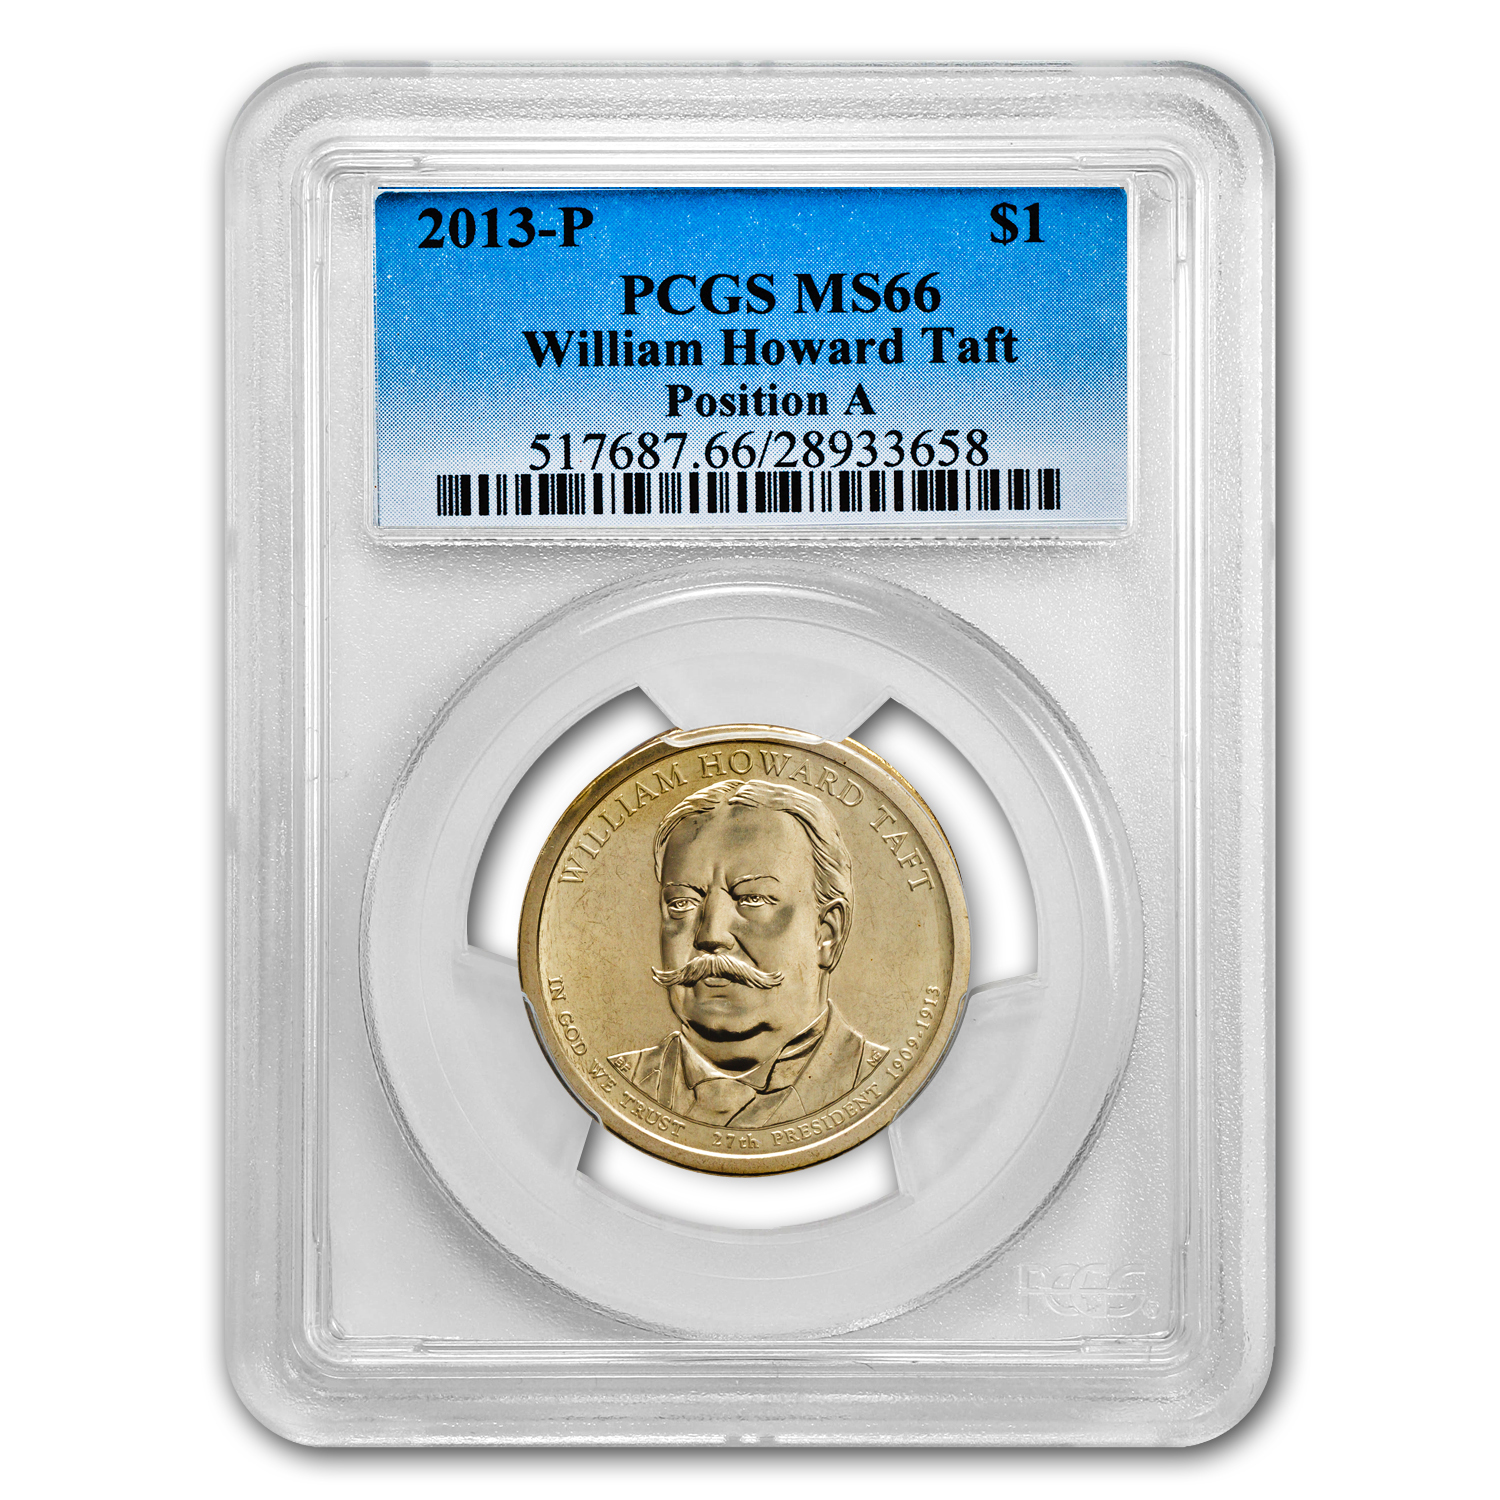 2013-P A Position William H. Taft Presidential Dollar MS-66 PCGS